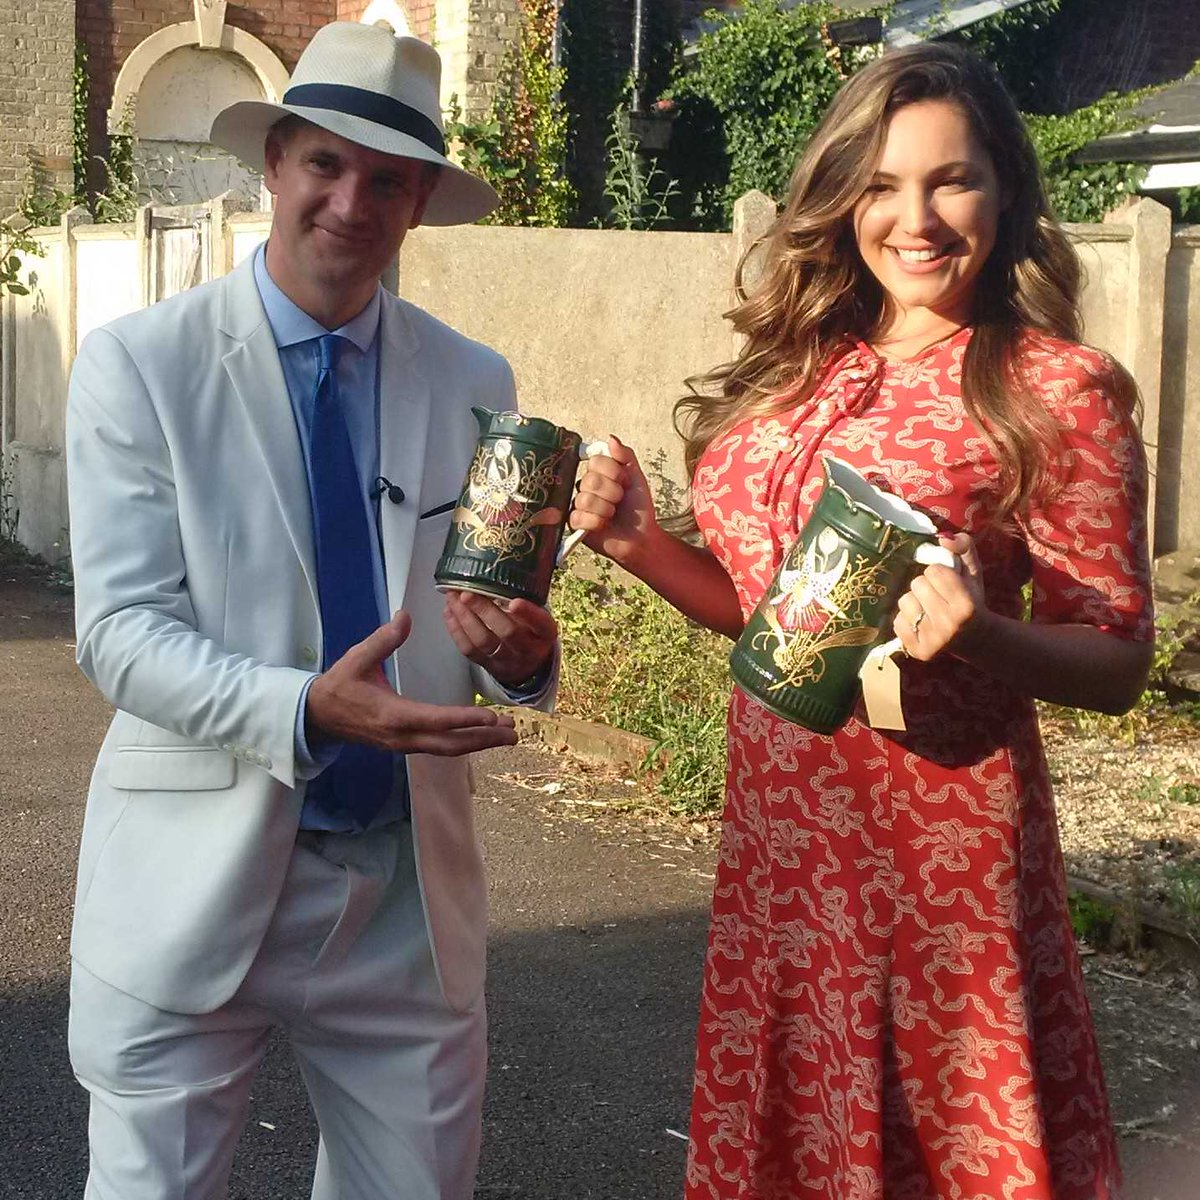 RT @HansonsAuctions: And we keep on buying...... Good to see @IAMKELLYBROOK is an antique fanatic! https://t.co/f89Lp9VN1A